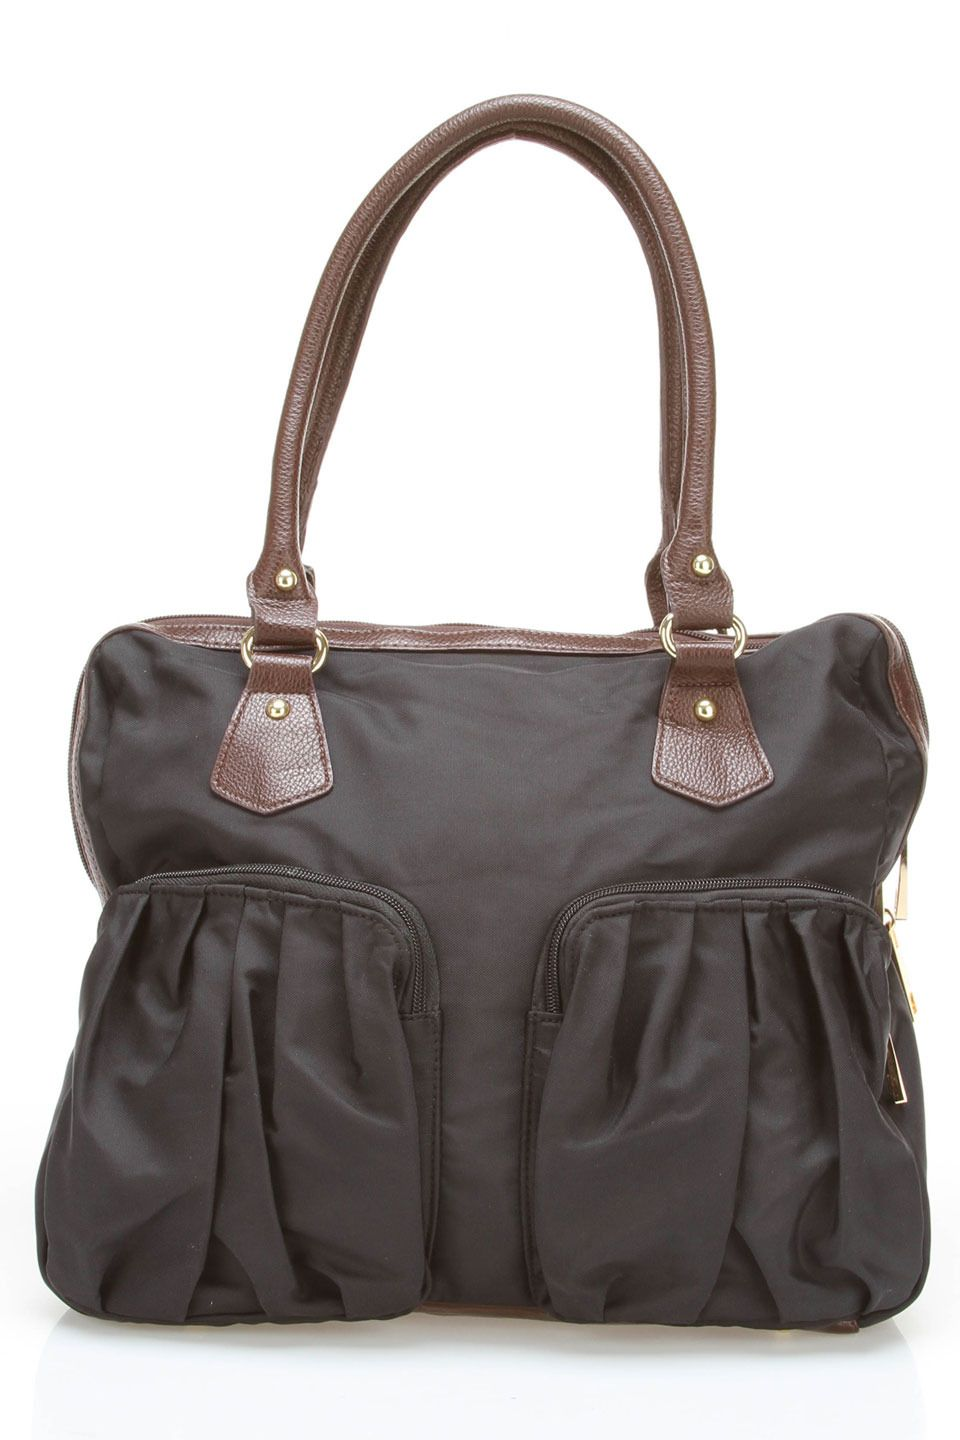 937b6ae43a0c Tiffany   Fred Shopping Tote Hobo In Black And Brown